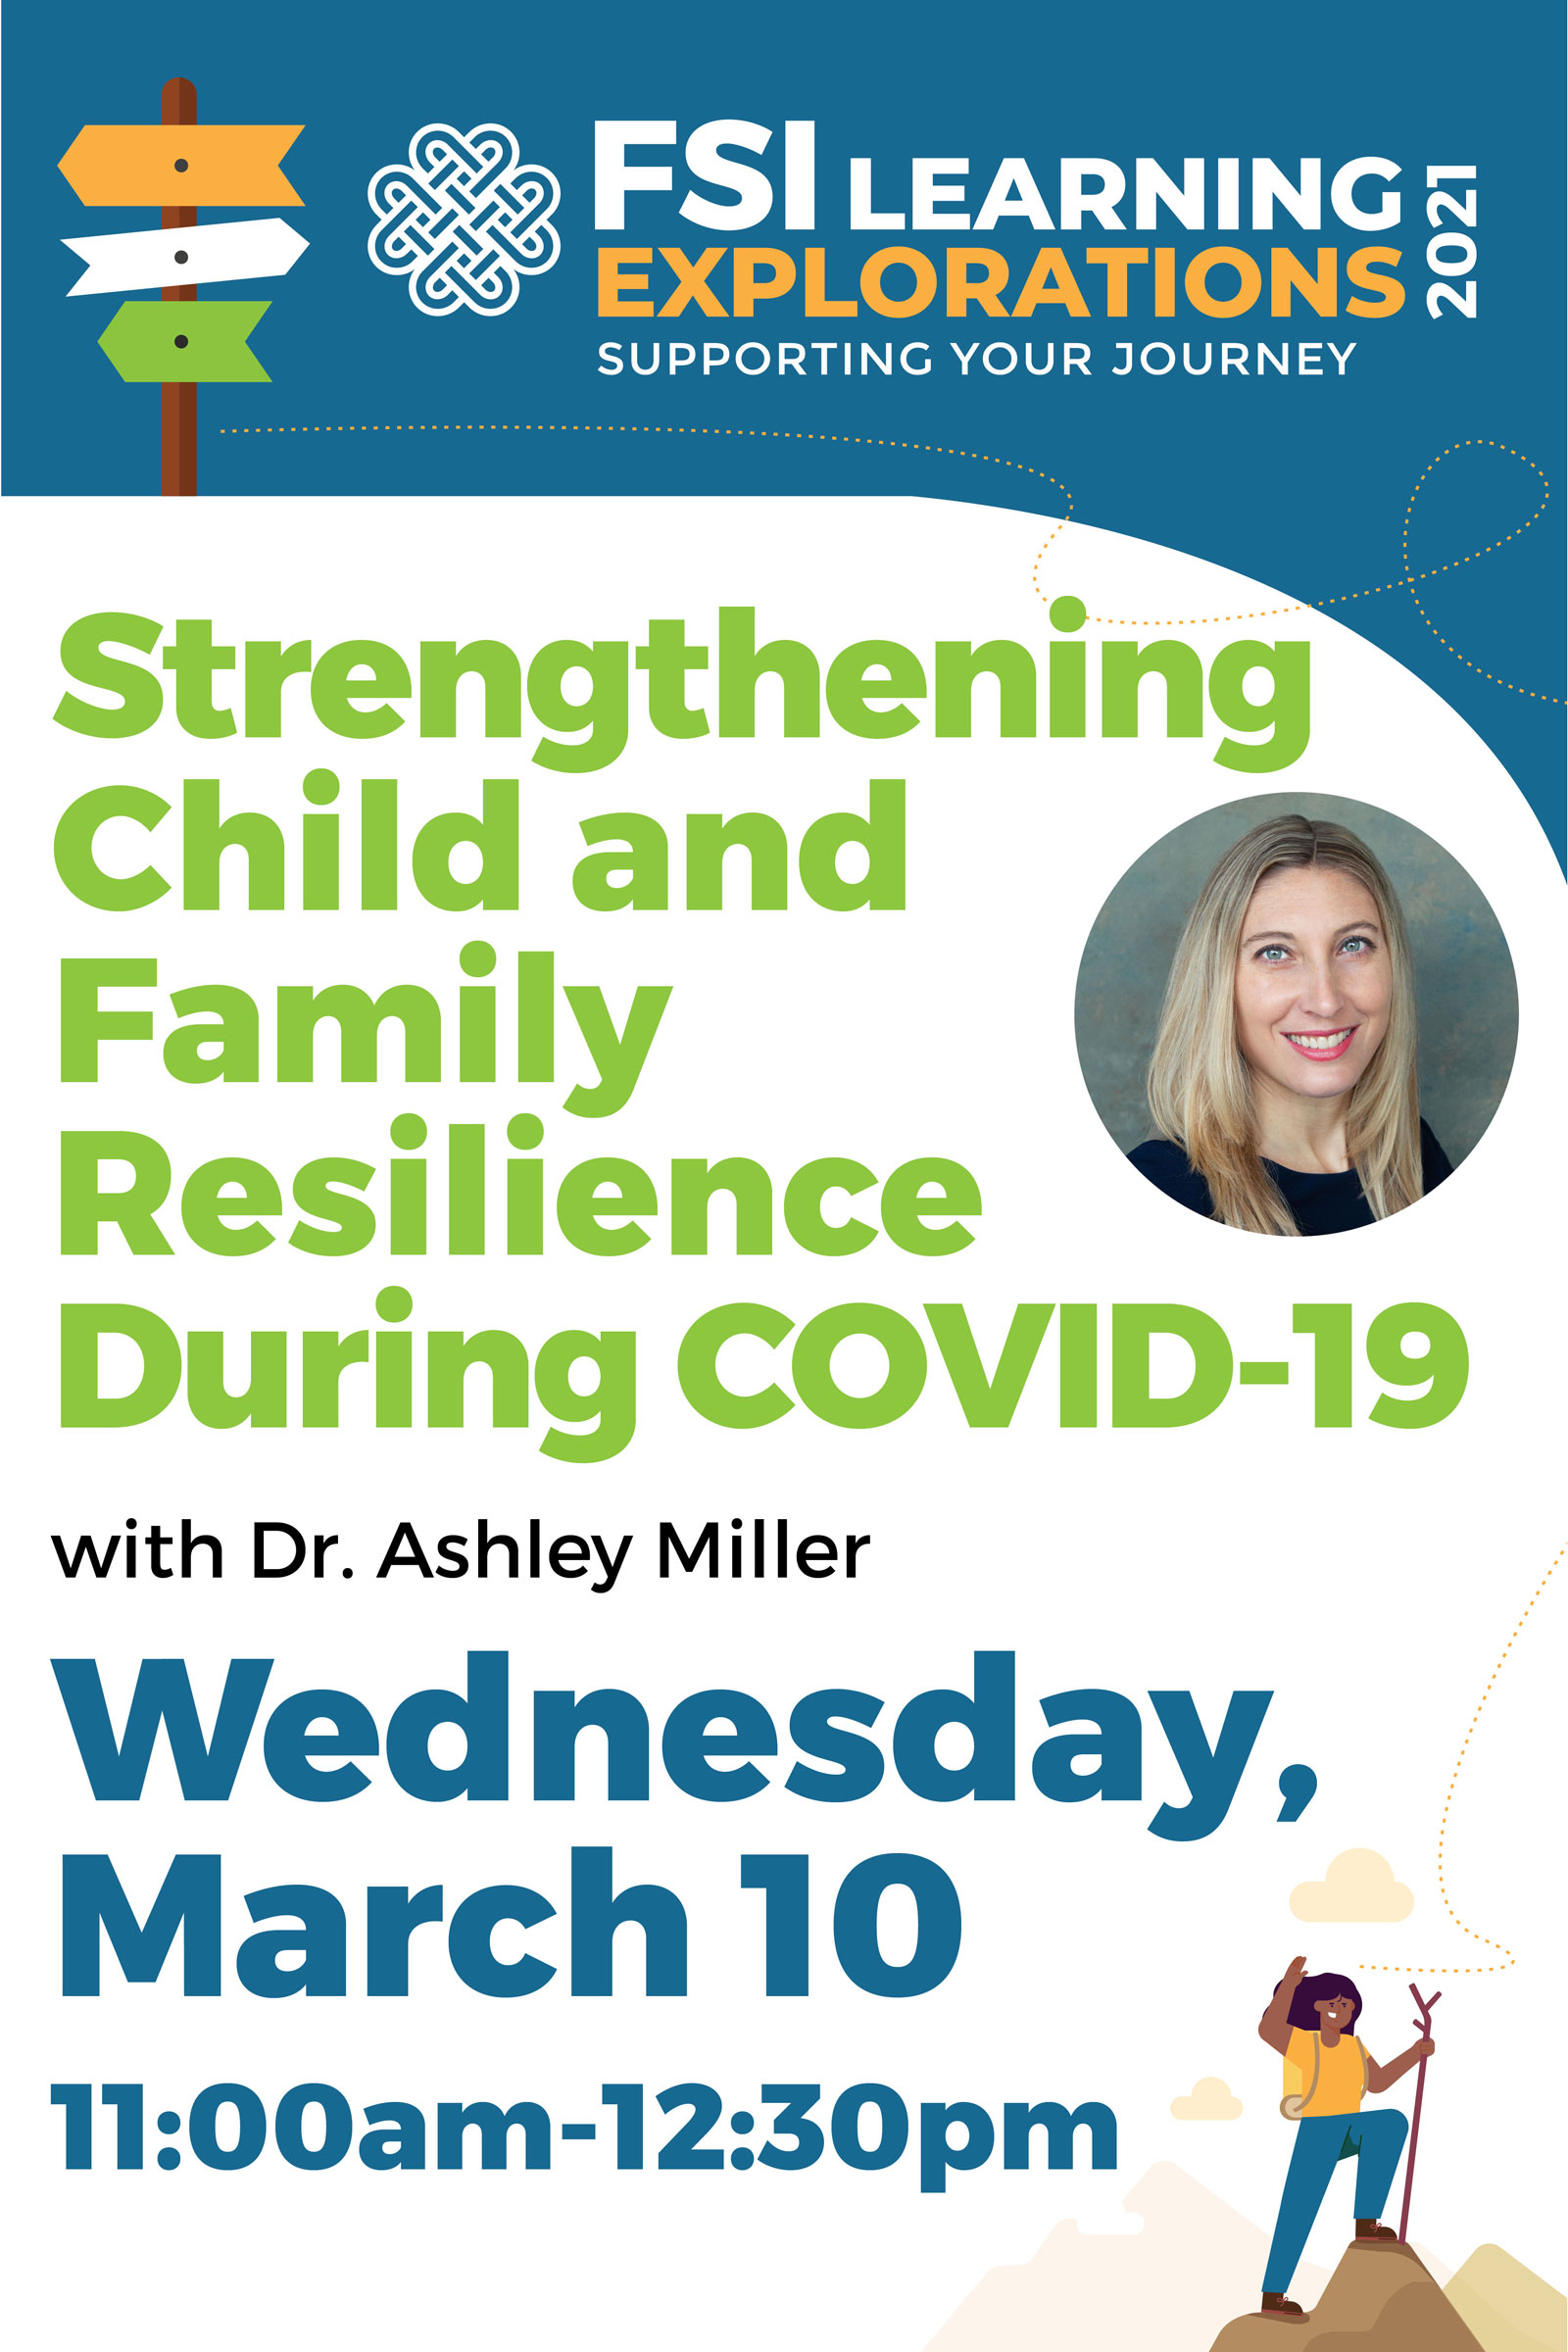 FSI Learning Explorations - Strengthening Child and Family Resilience During COVID-19